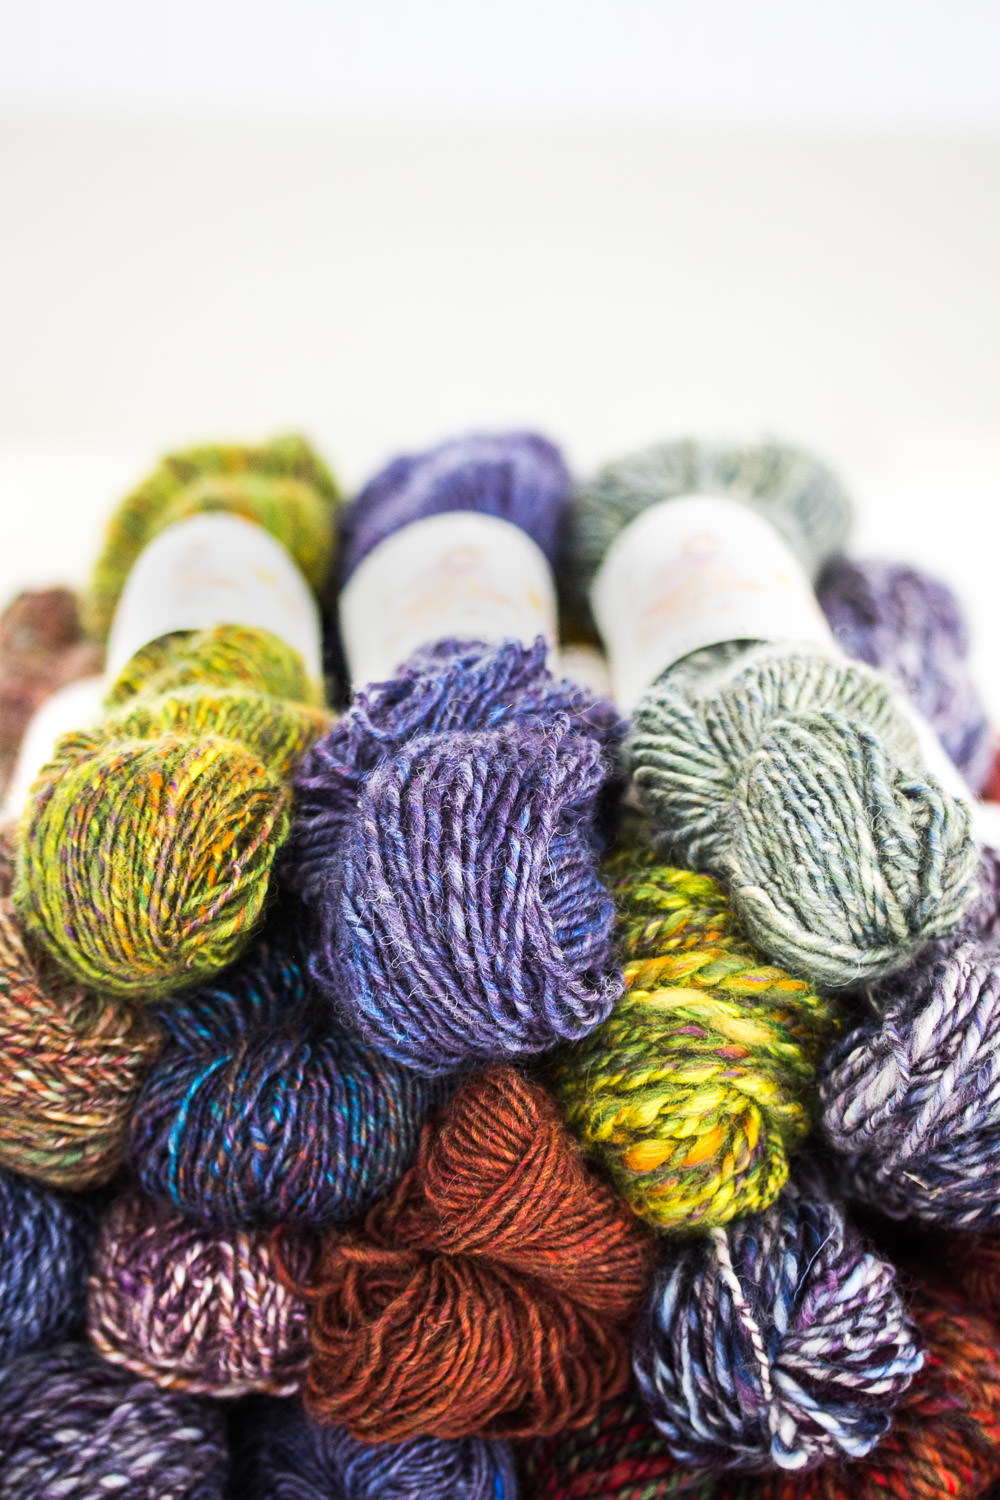 Hand spun British yarns, hand dyed British wool